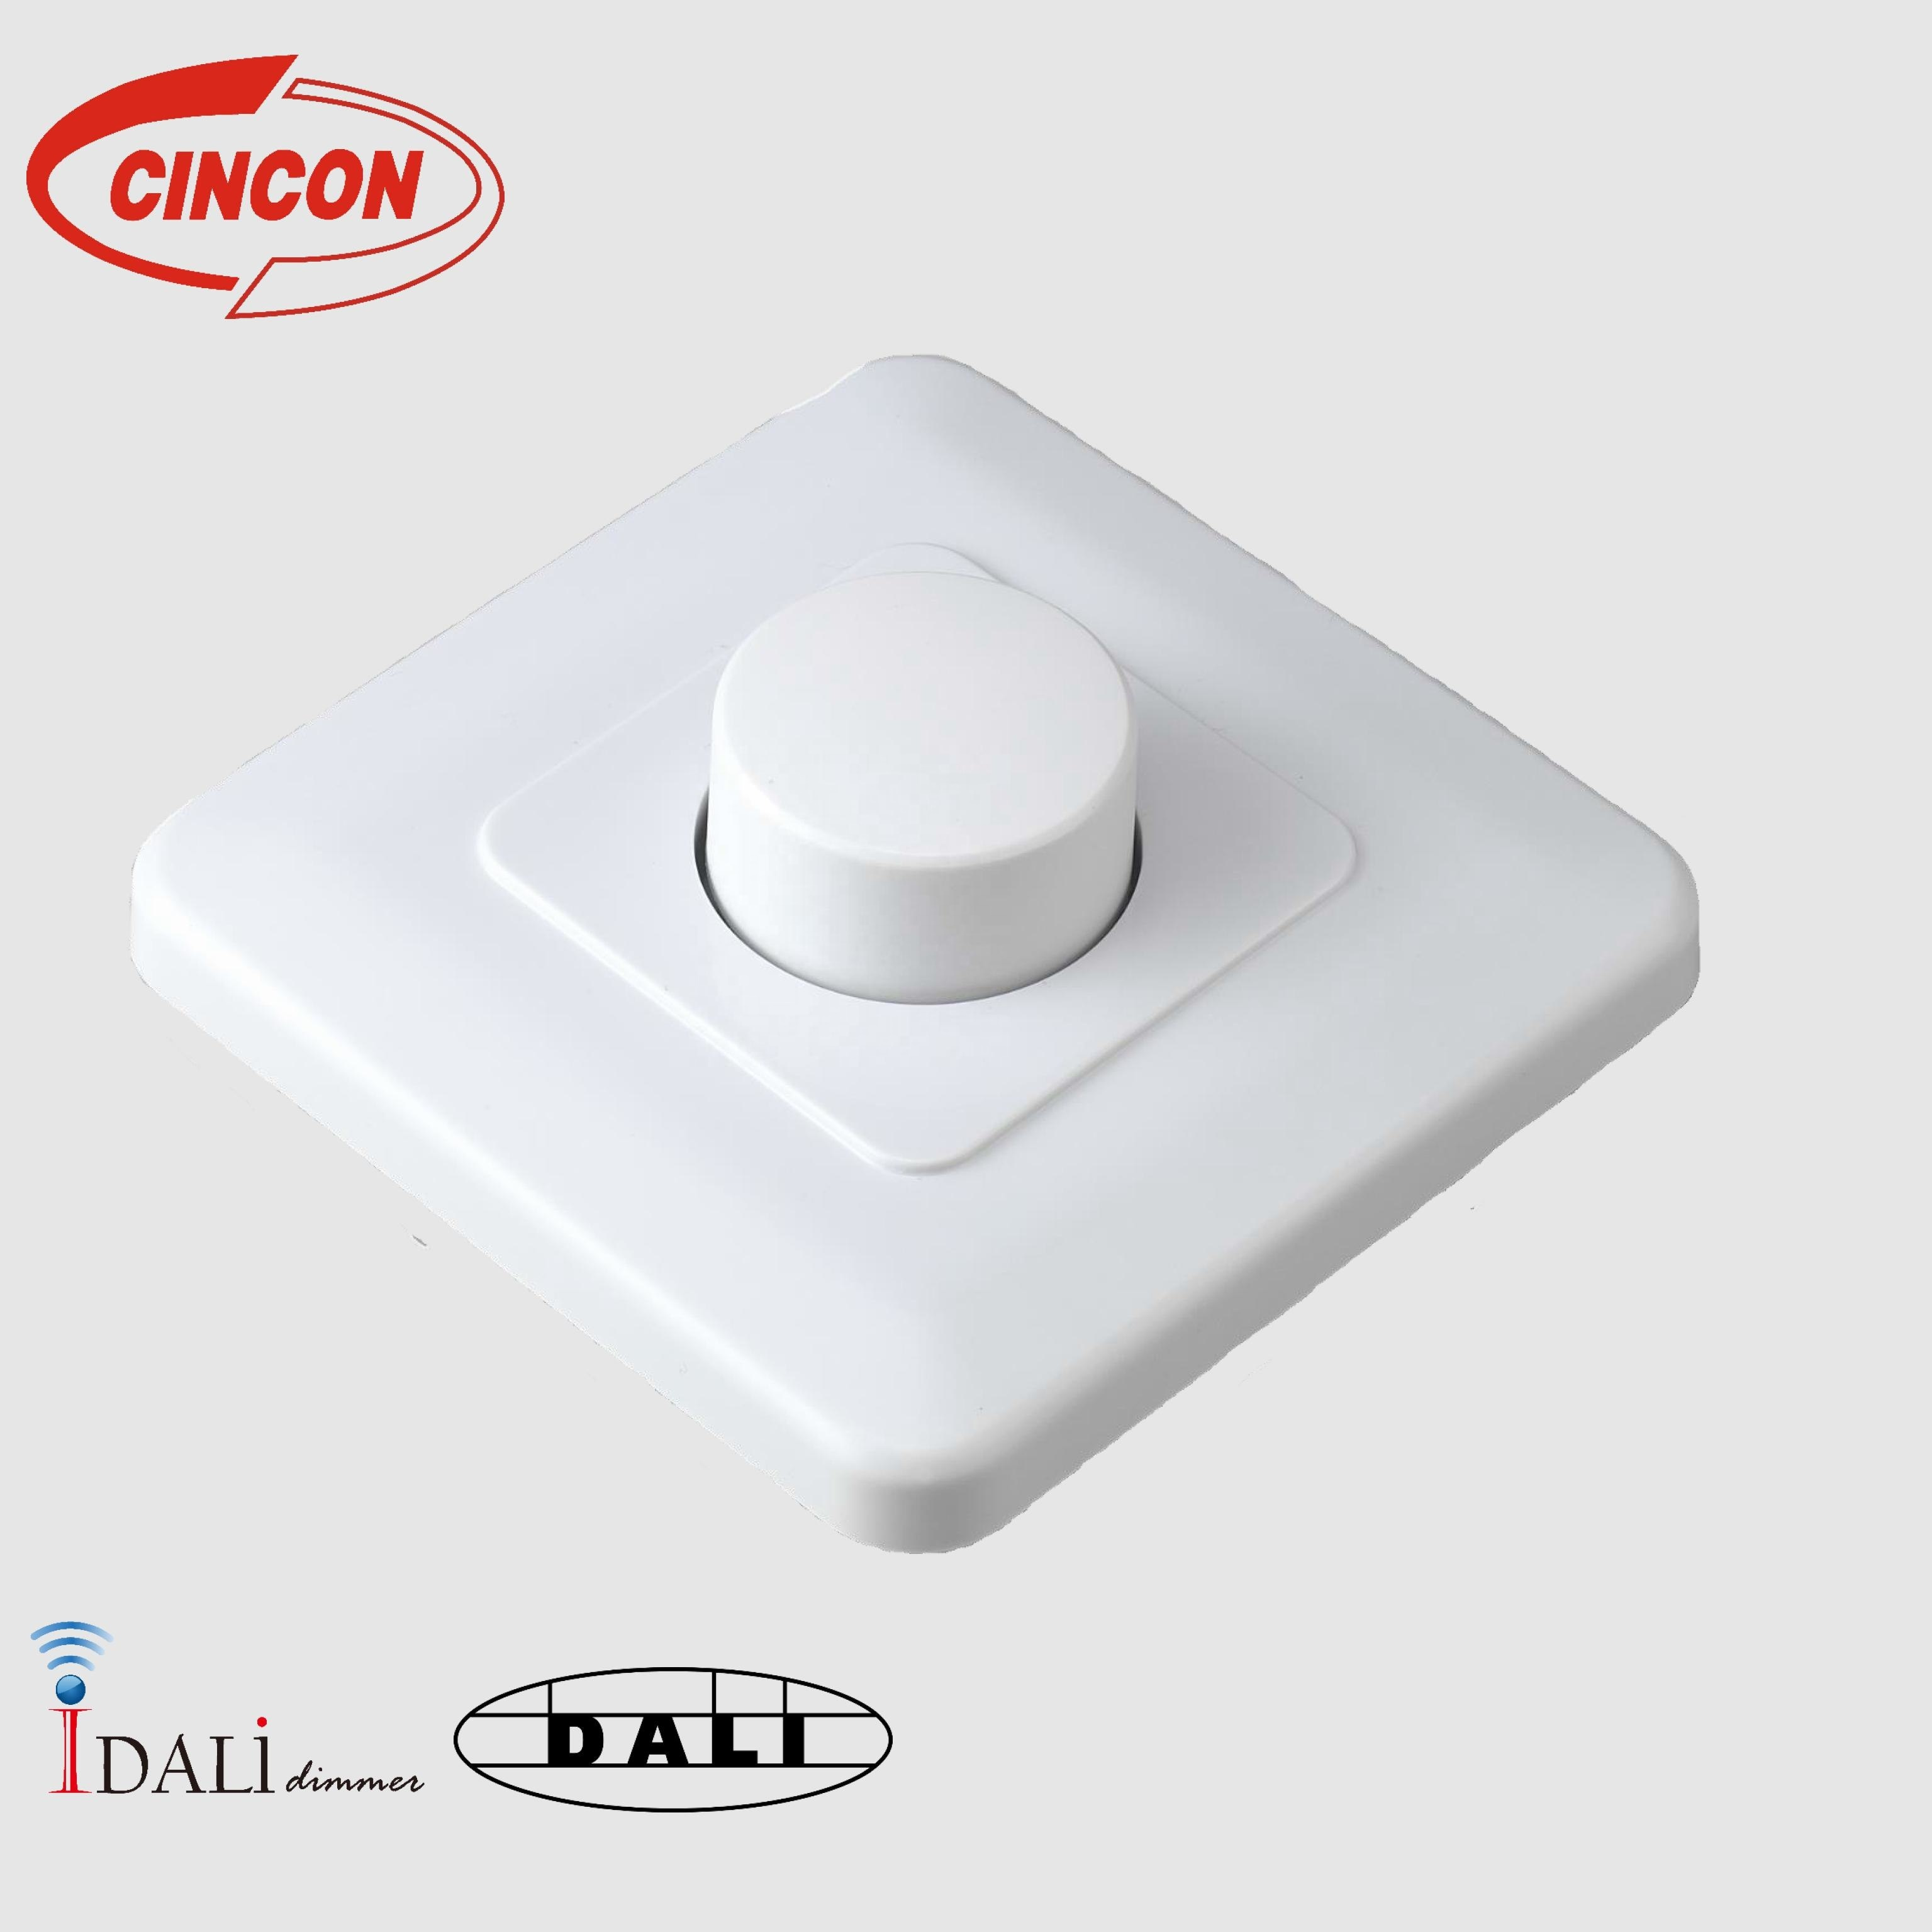 Dali Dimmer Switch For Lighting Control System Led Controller Hotel Light Room Rotary